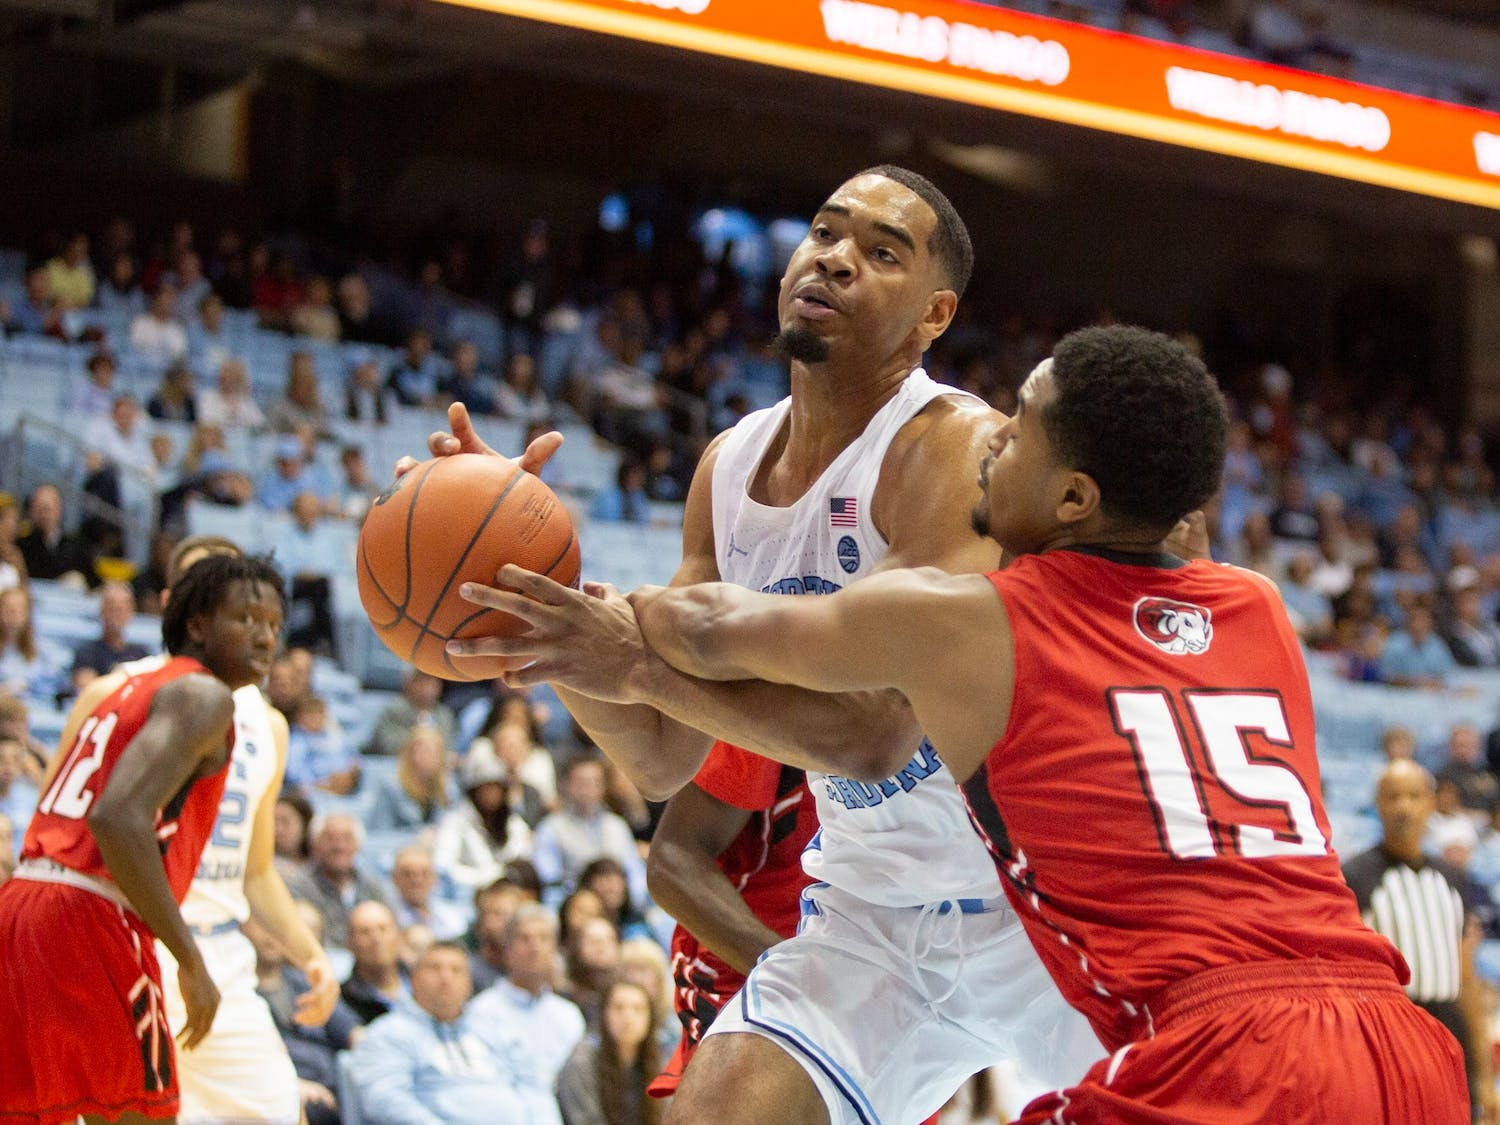 Winston-Salem State junior Glen Campbell (15) guards UNC junior forward Garrison Brooks (15) at the exhibition game on Friday, Nov. 1, 2019 in the Smith Center. UNC won 96-61.